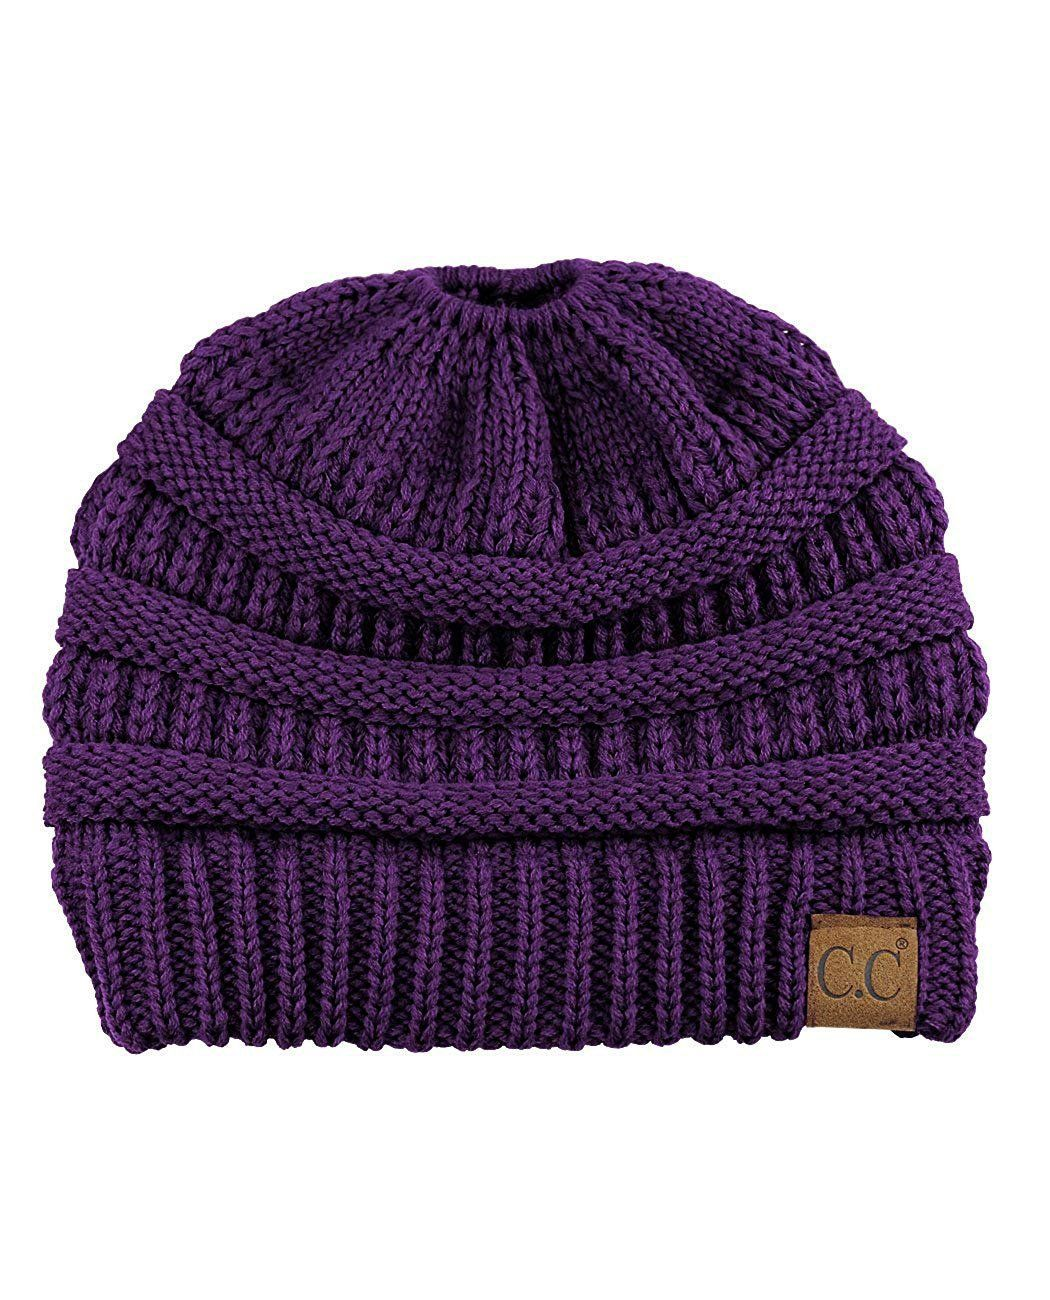 A Handmade Soft Knit Beanie myurbanluxe Solid Purple